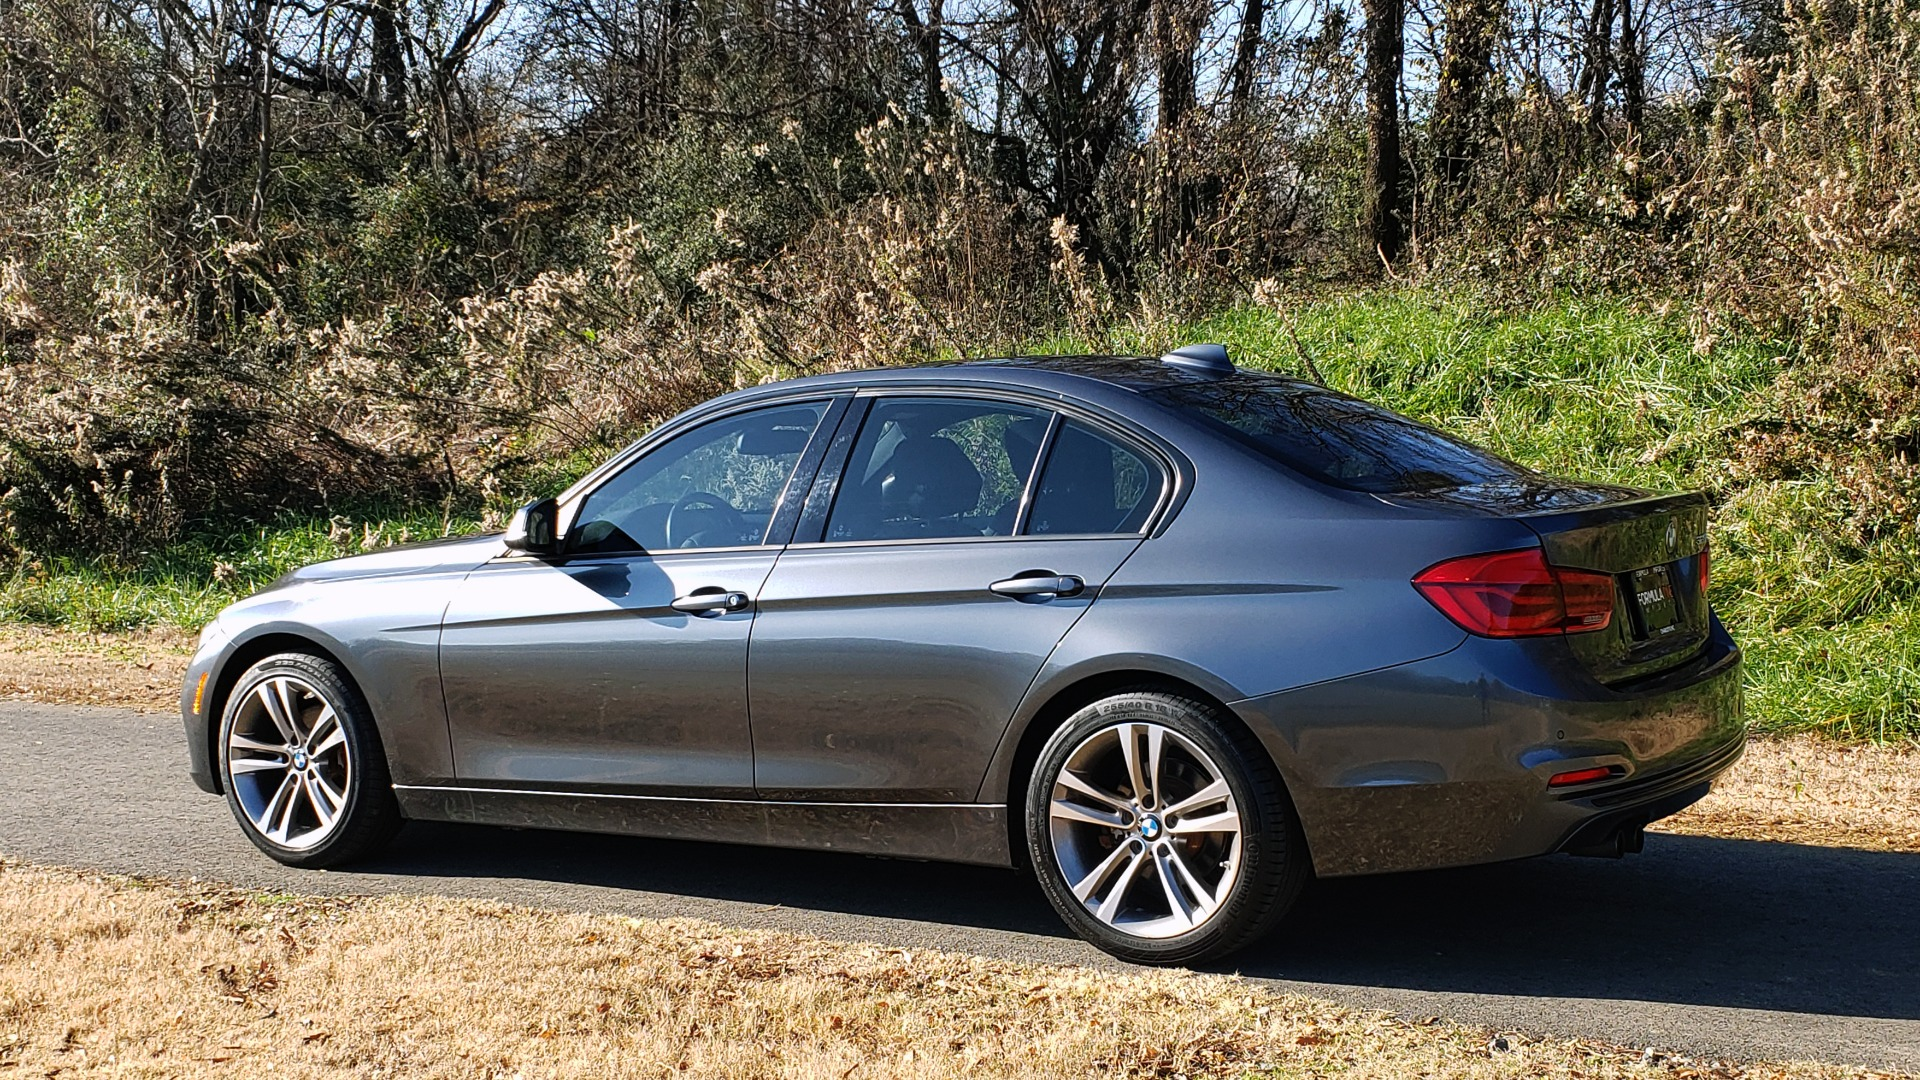 Used 2016 BMW 3 SERIES 328I / DRVR ASST / SUNROOF / PARK DIST CNTRL / REARVIEW for sale Sold at Formula Imports in Charlotte NC 28227 3